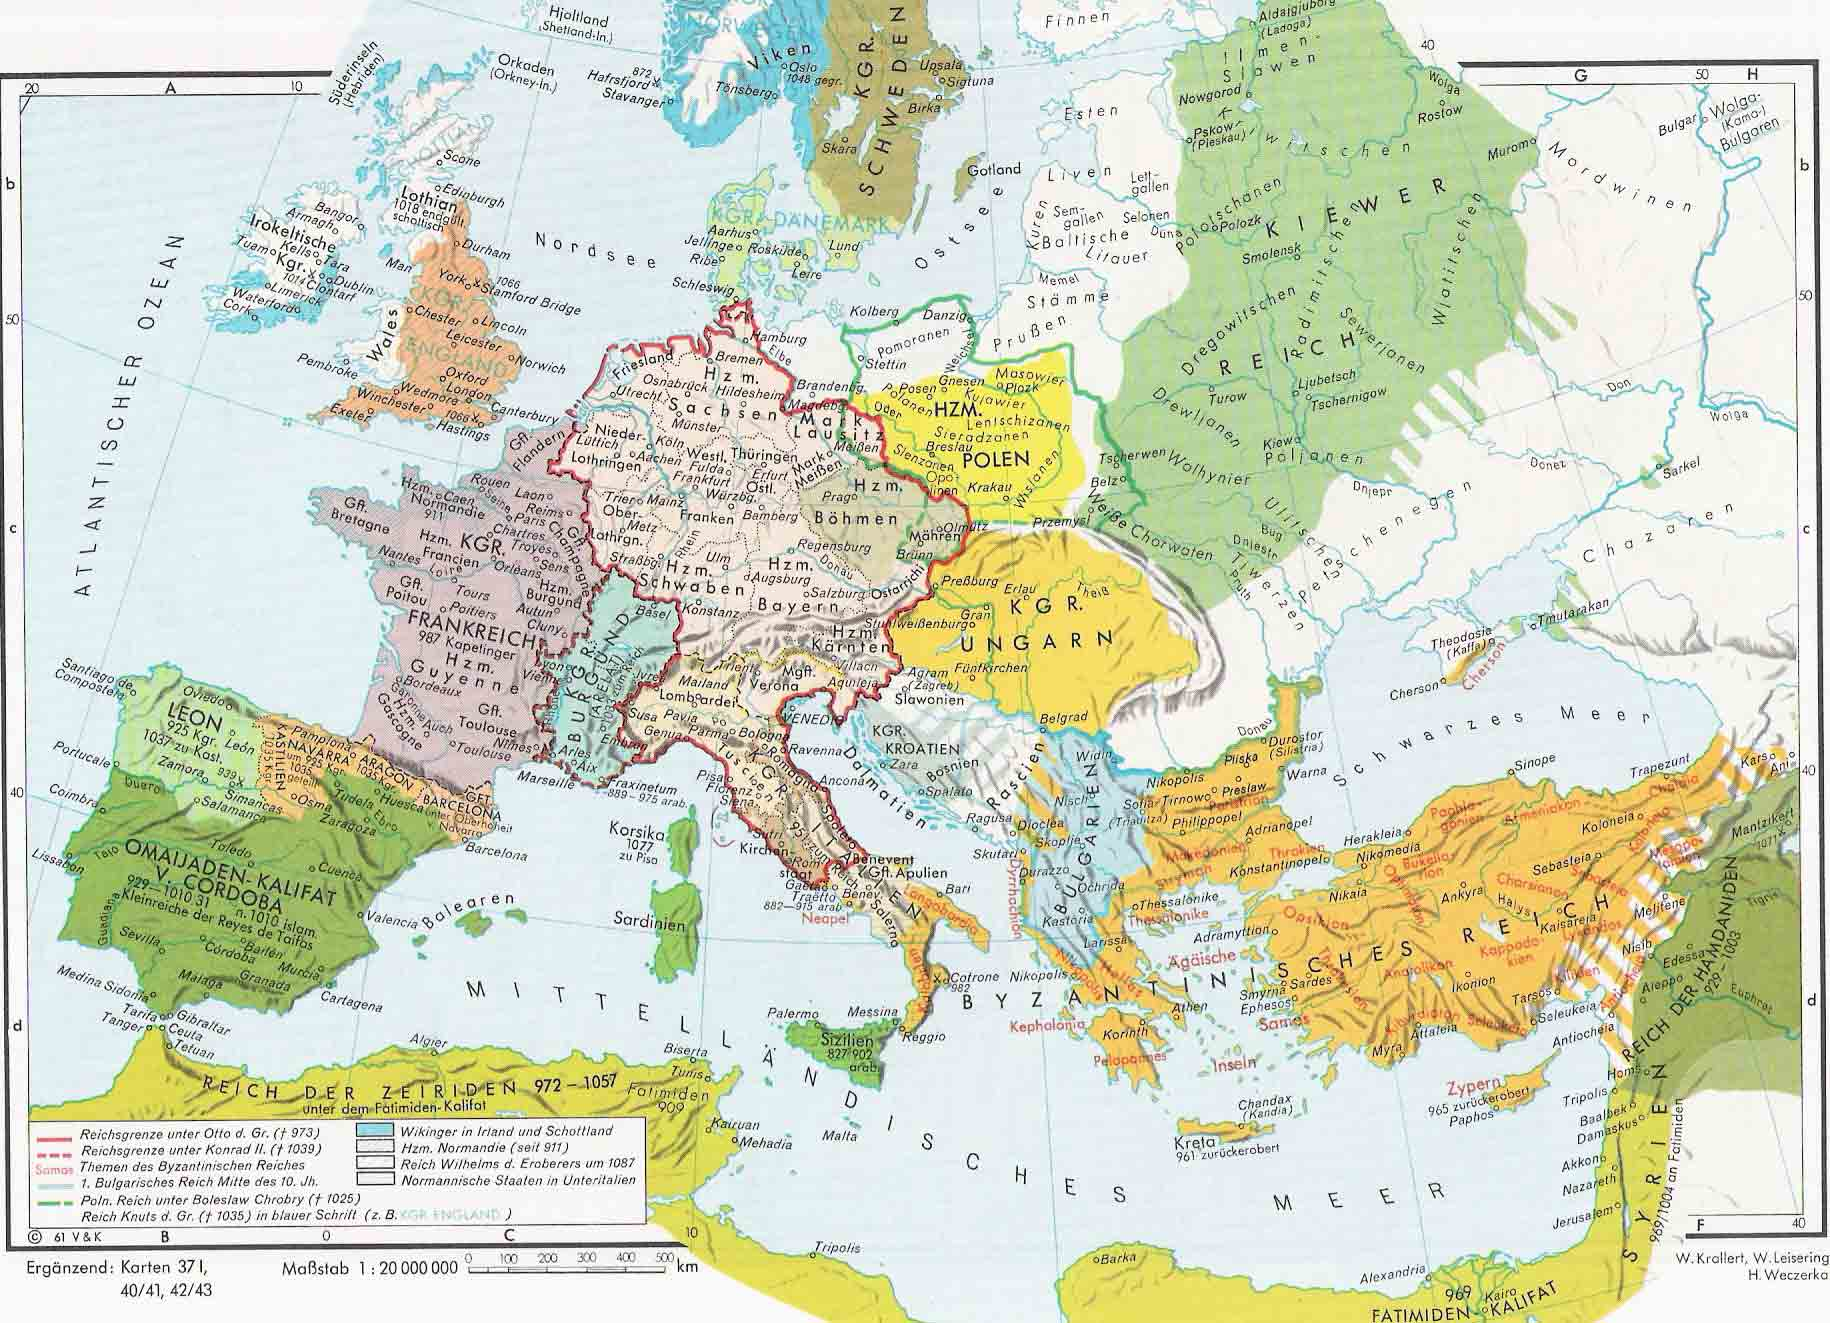 Europe in the Middle Ages 900-1000